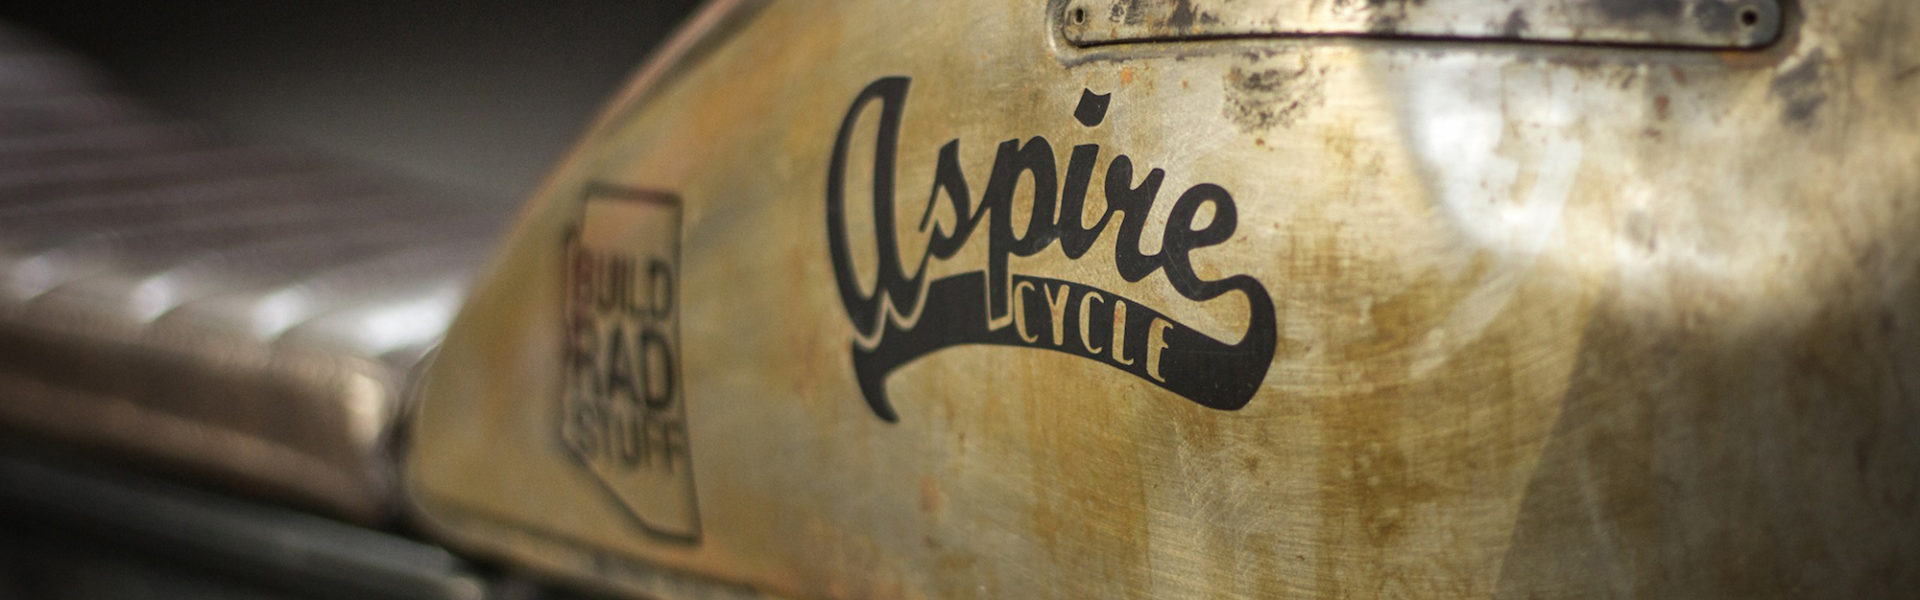 Aspire Cycle Motorcycles